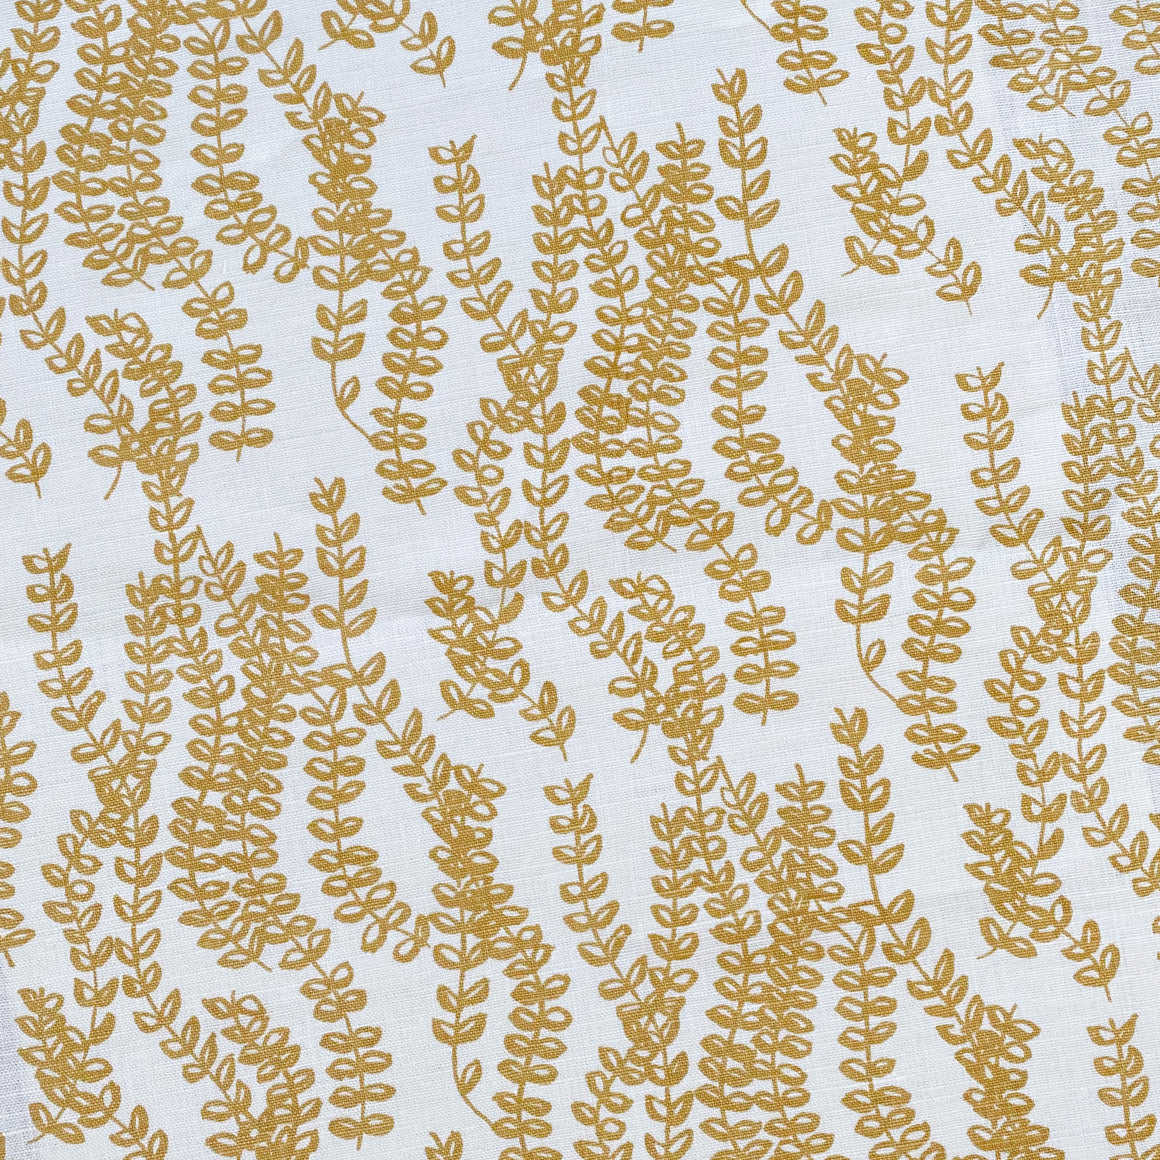 Antoinette Fabric Wheat on Oyster